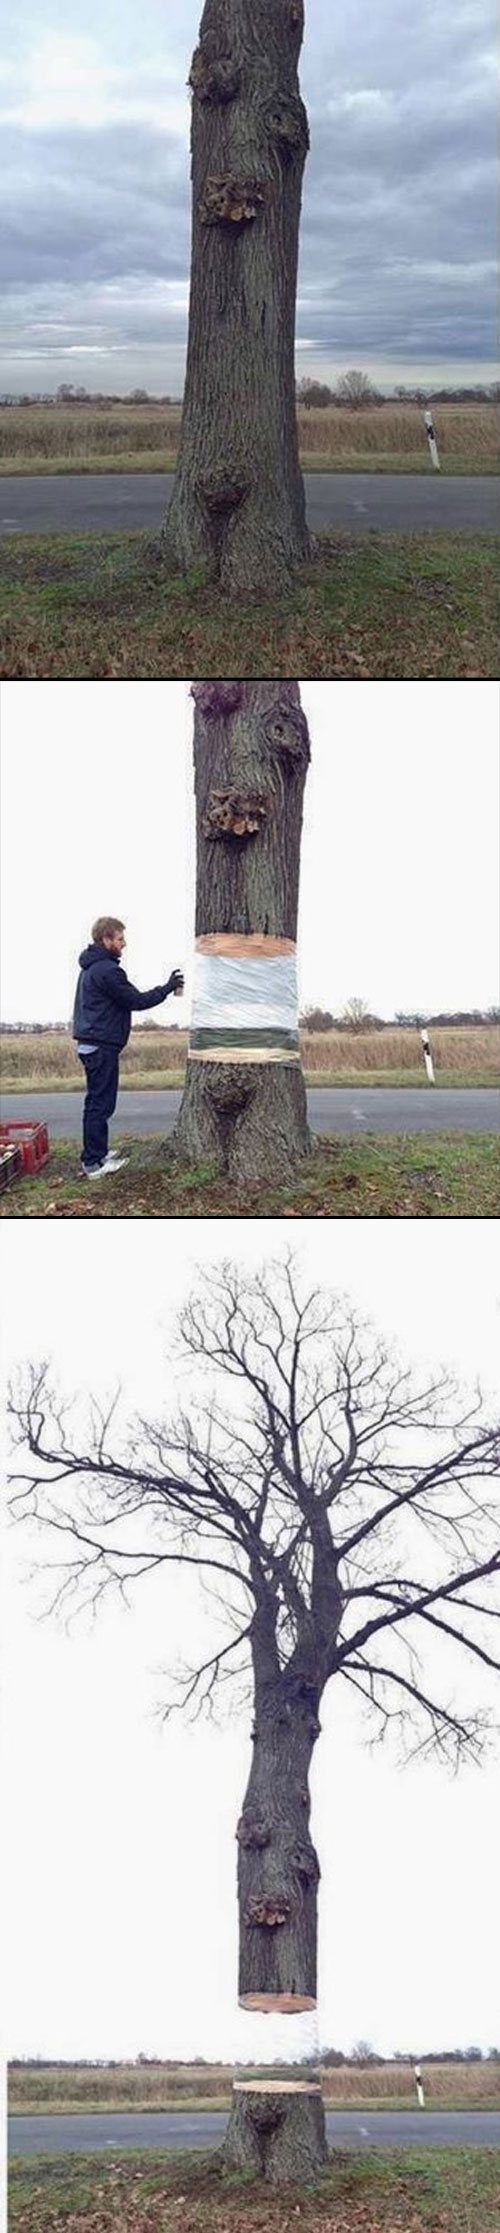 Someone painted a section of this tree to make it look like it is missing. OK, Im impressed